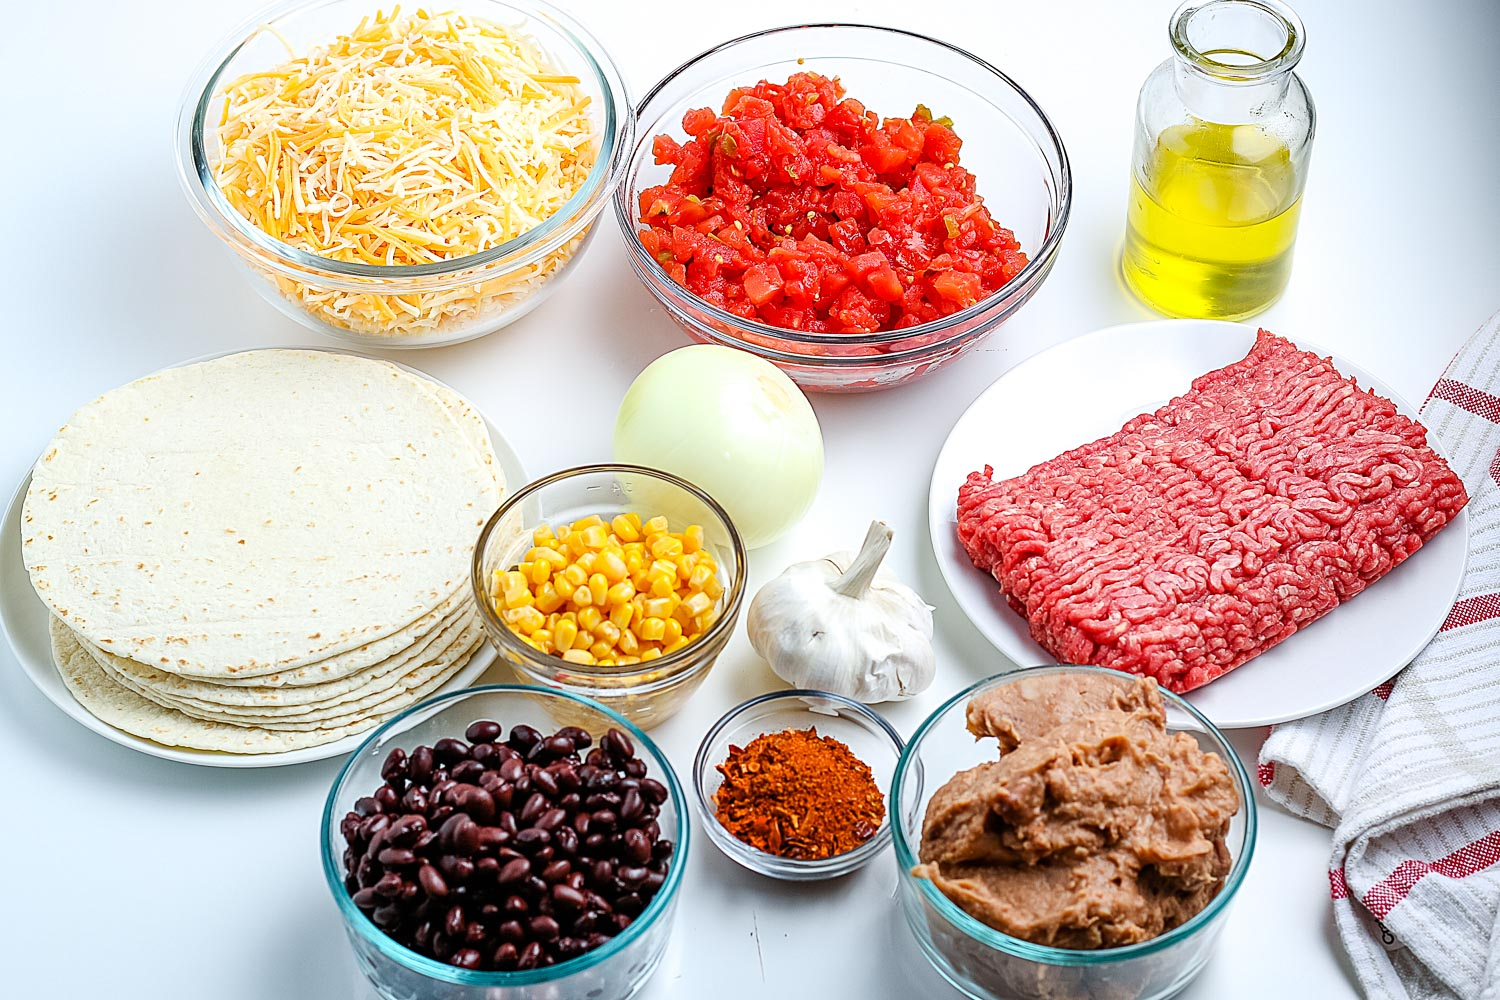 All of the ingredients needed to make this recipe.